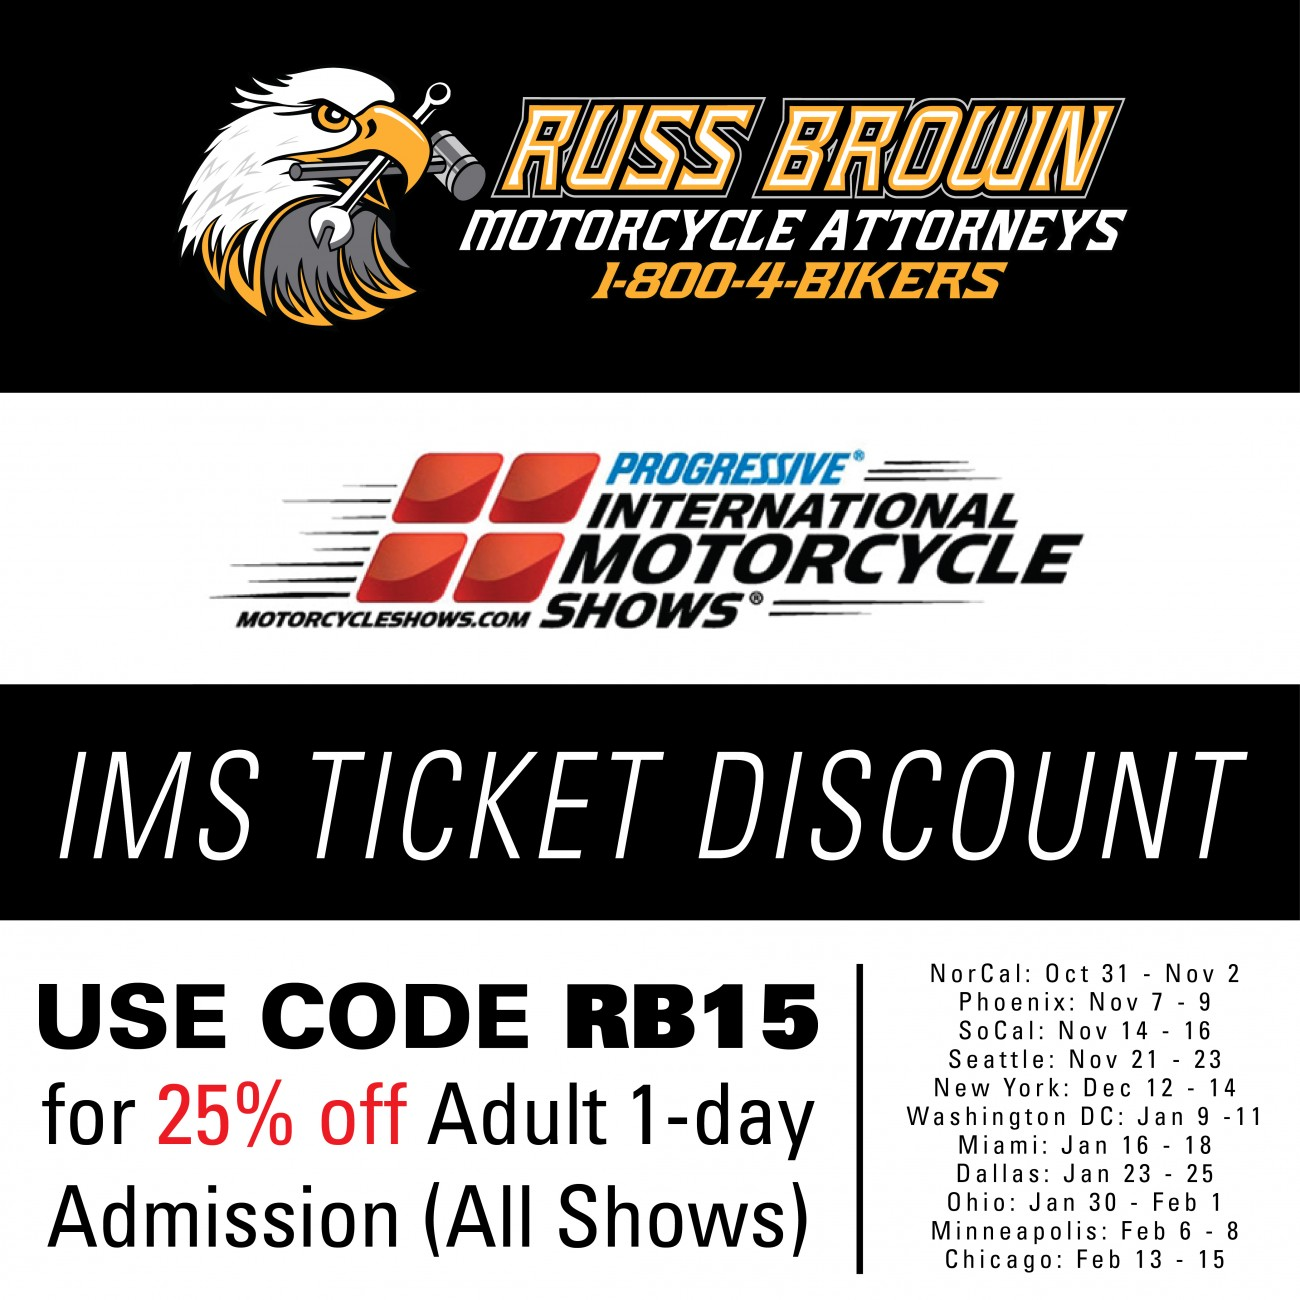 russbrown-ims-discount-01